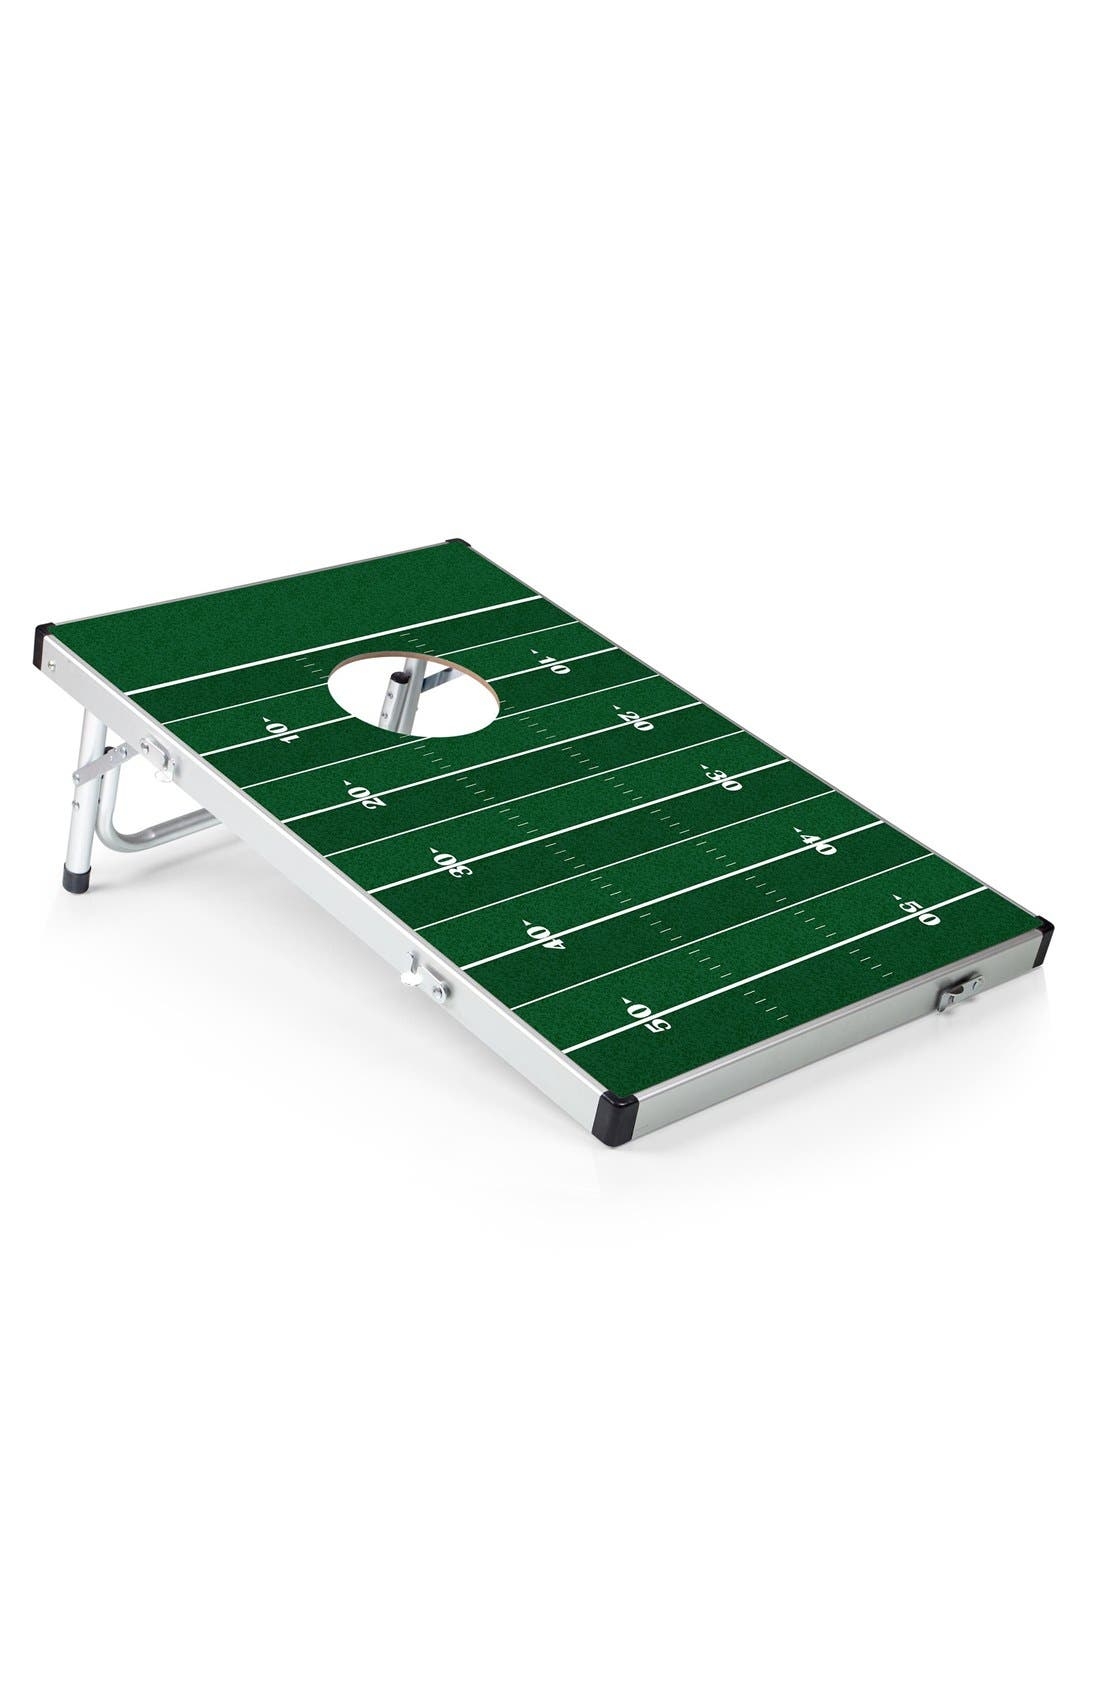 'Football' Bean Bag Toss Game,                         Main,                         color, Green